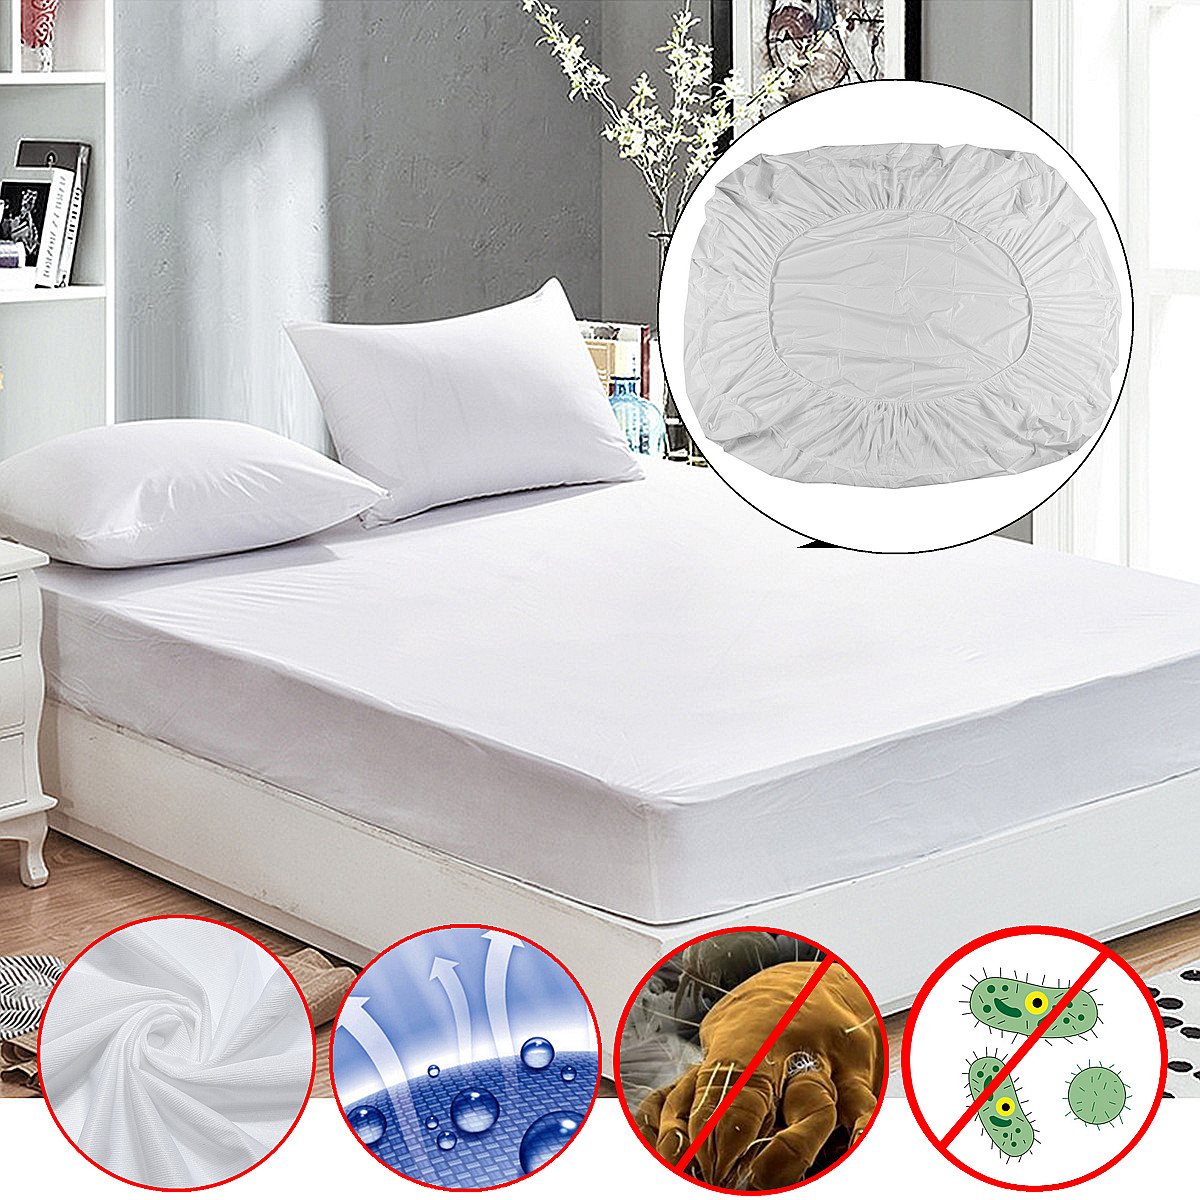 Allergens Trenton Gifts Mattress Protector Mites Protect Against Bed Bugs King